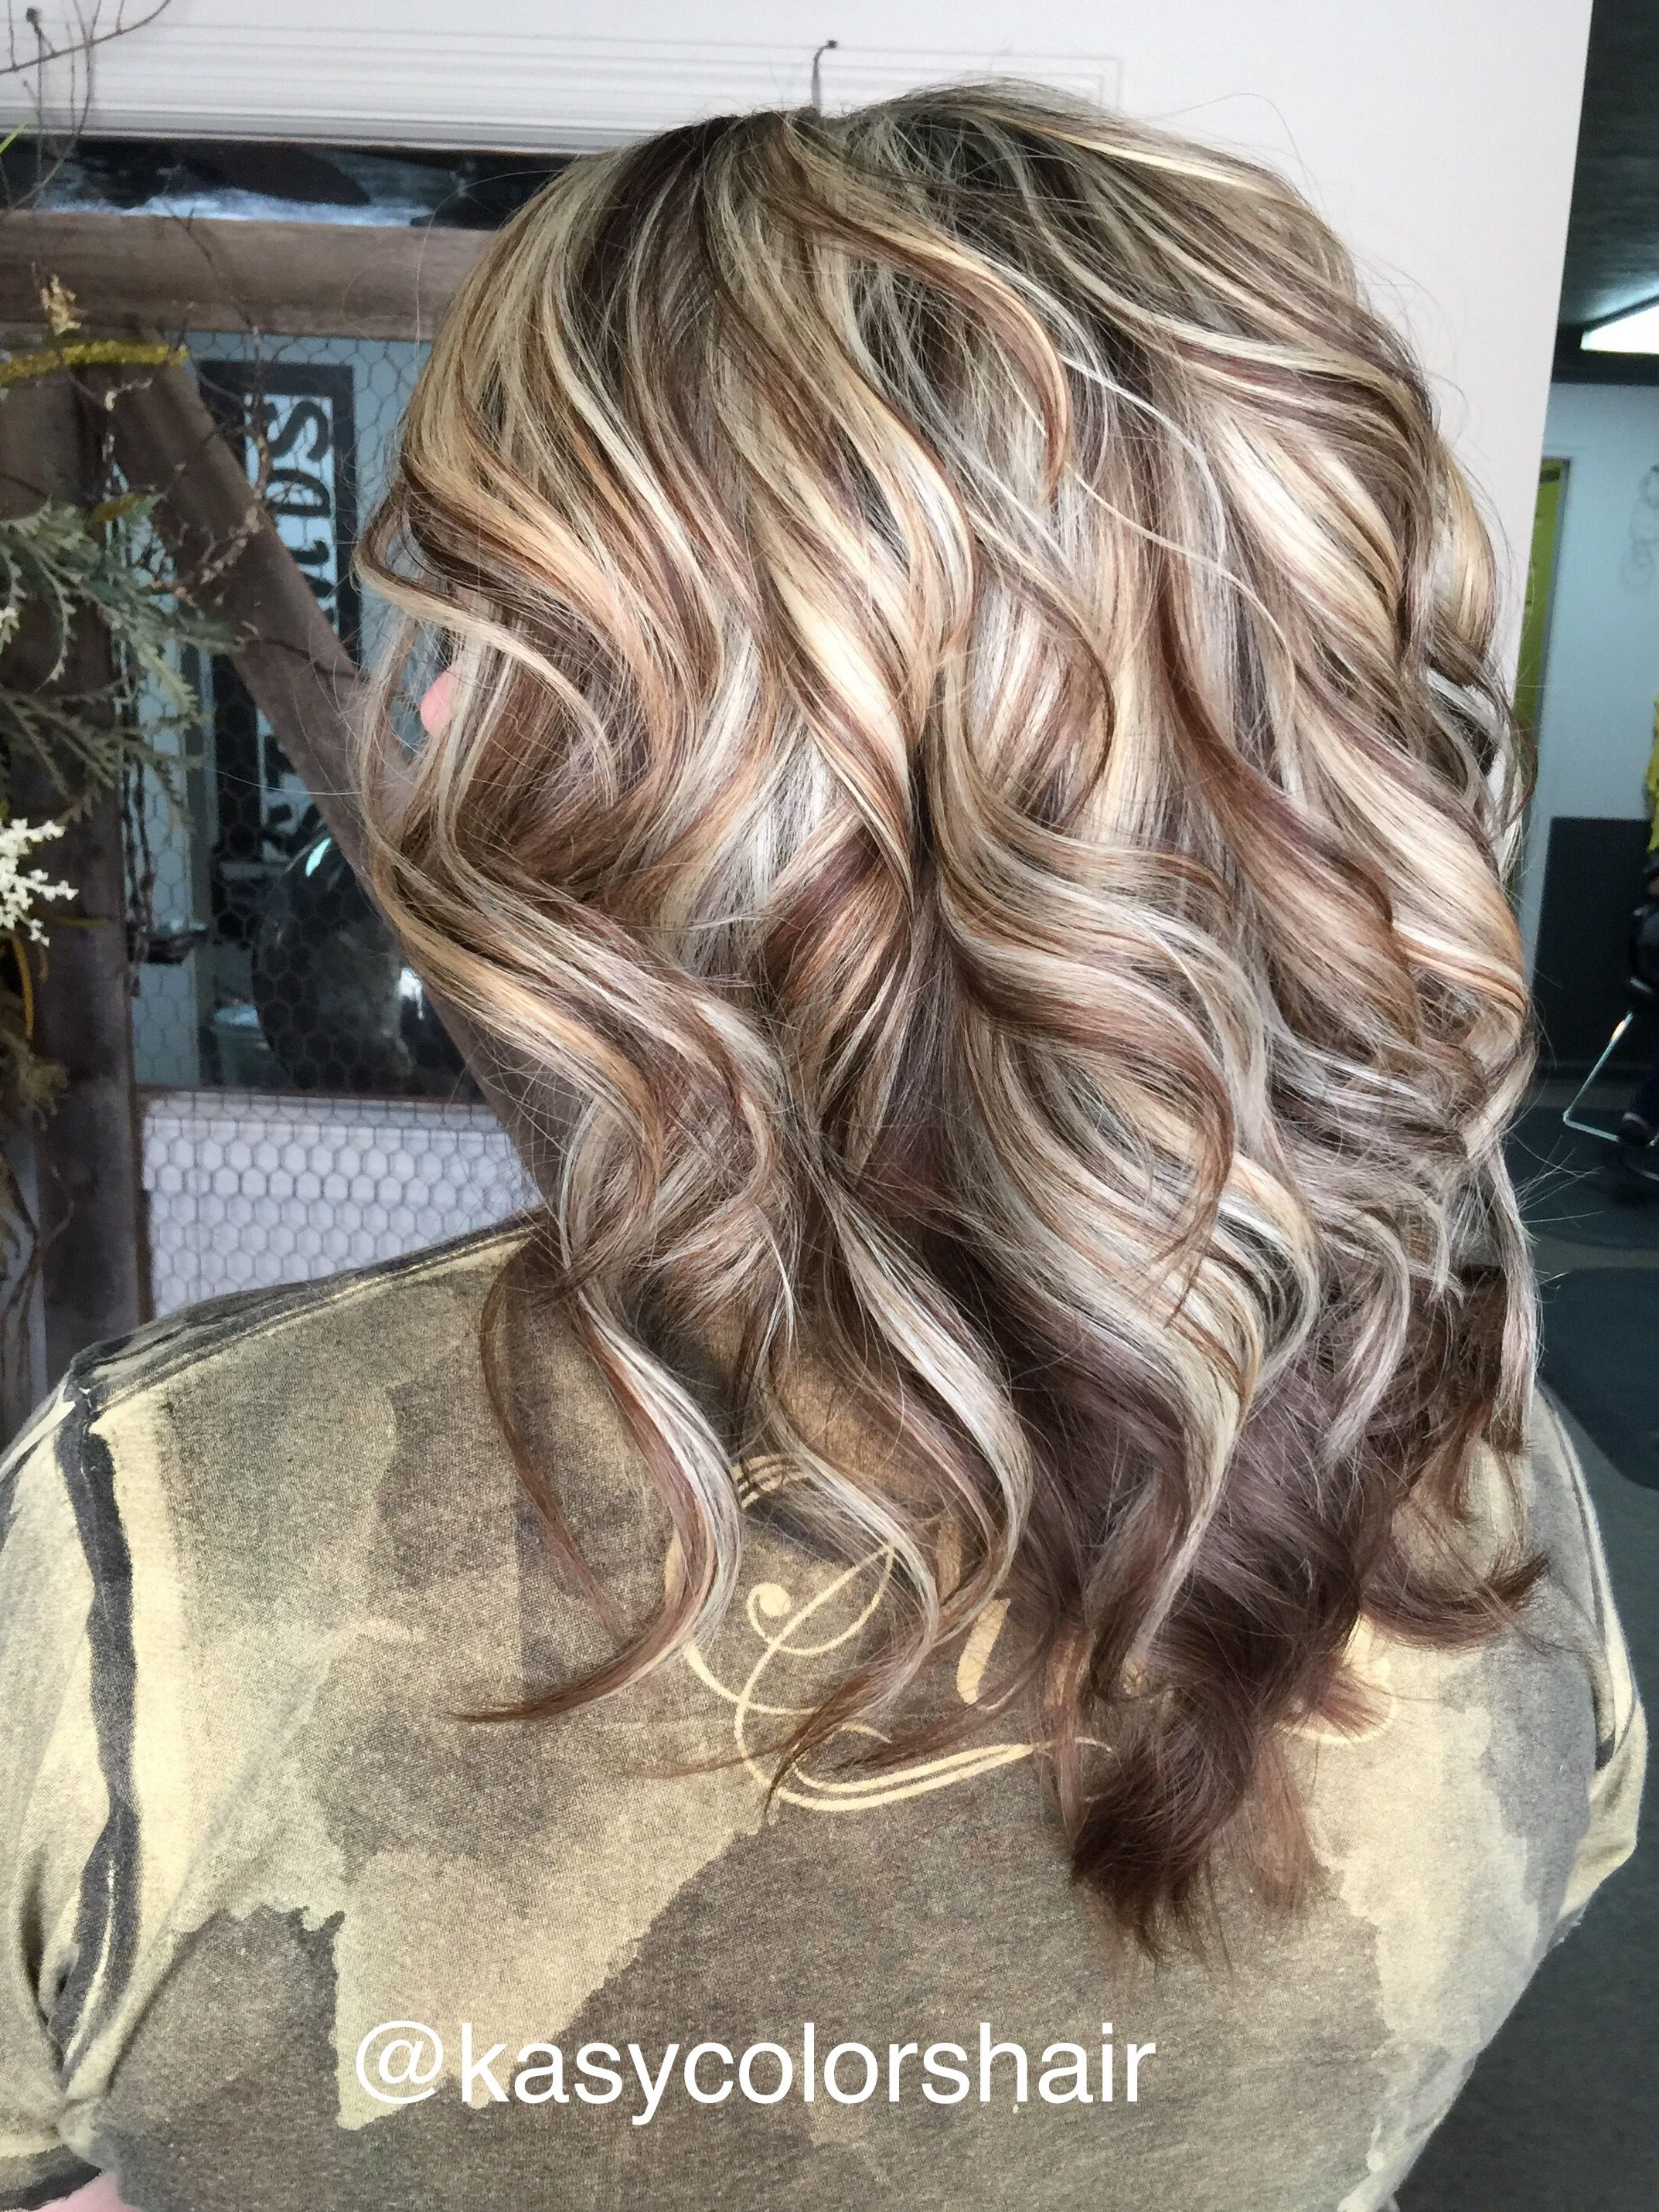 Blonde highlight & brown lowlight kasycolorshair lewisburgtn